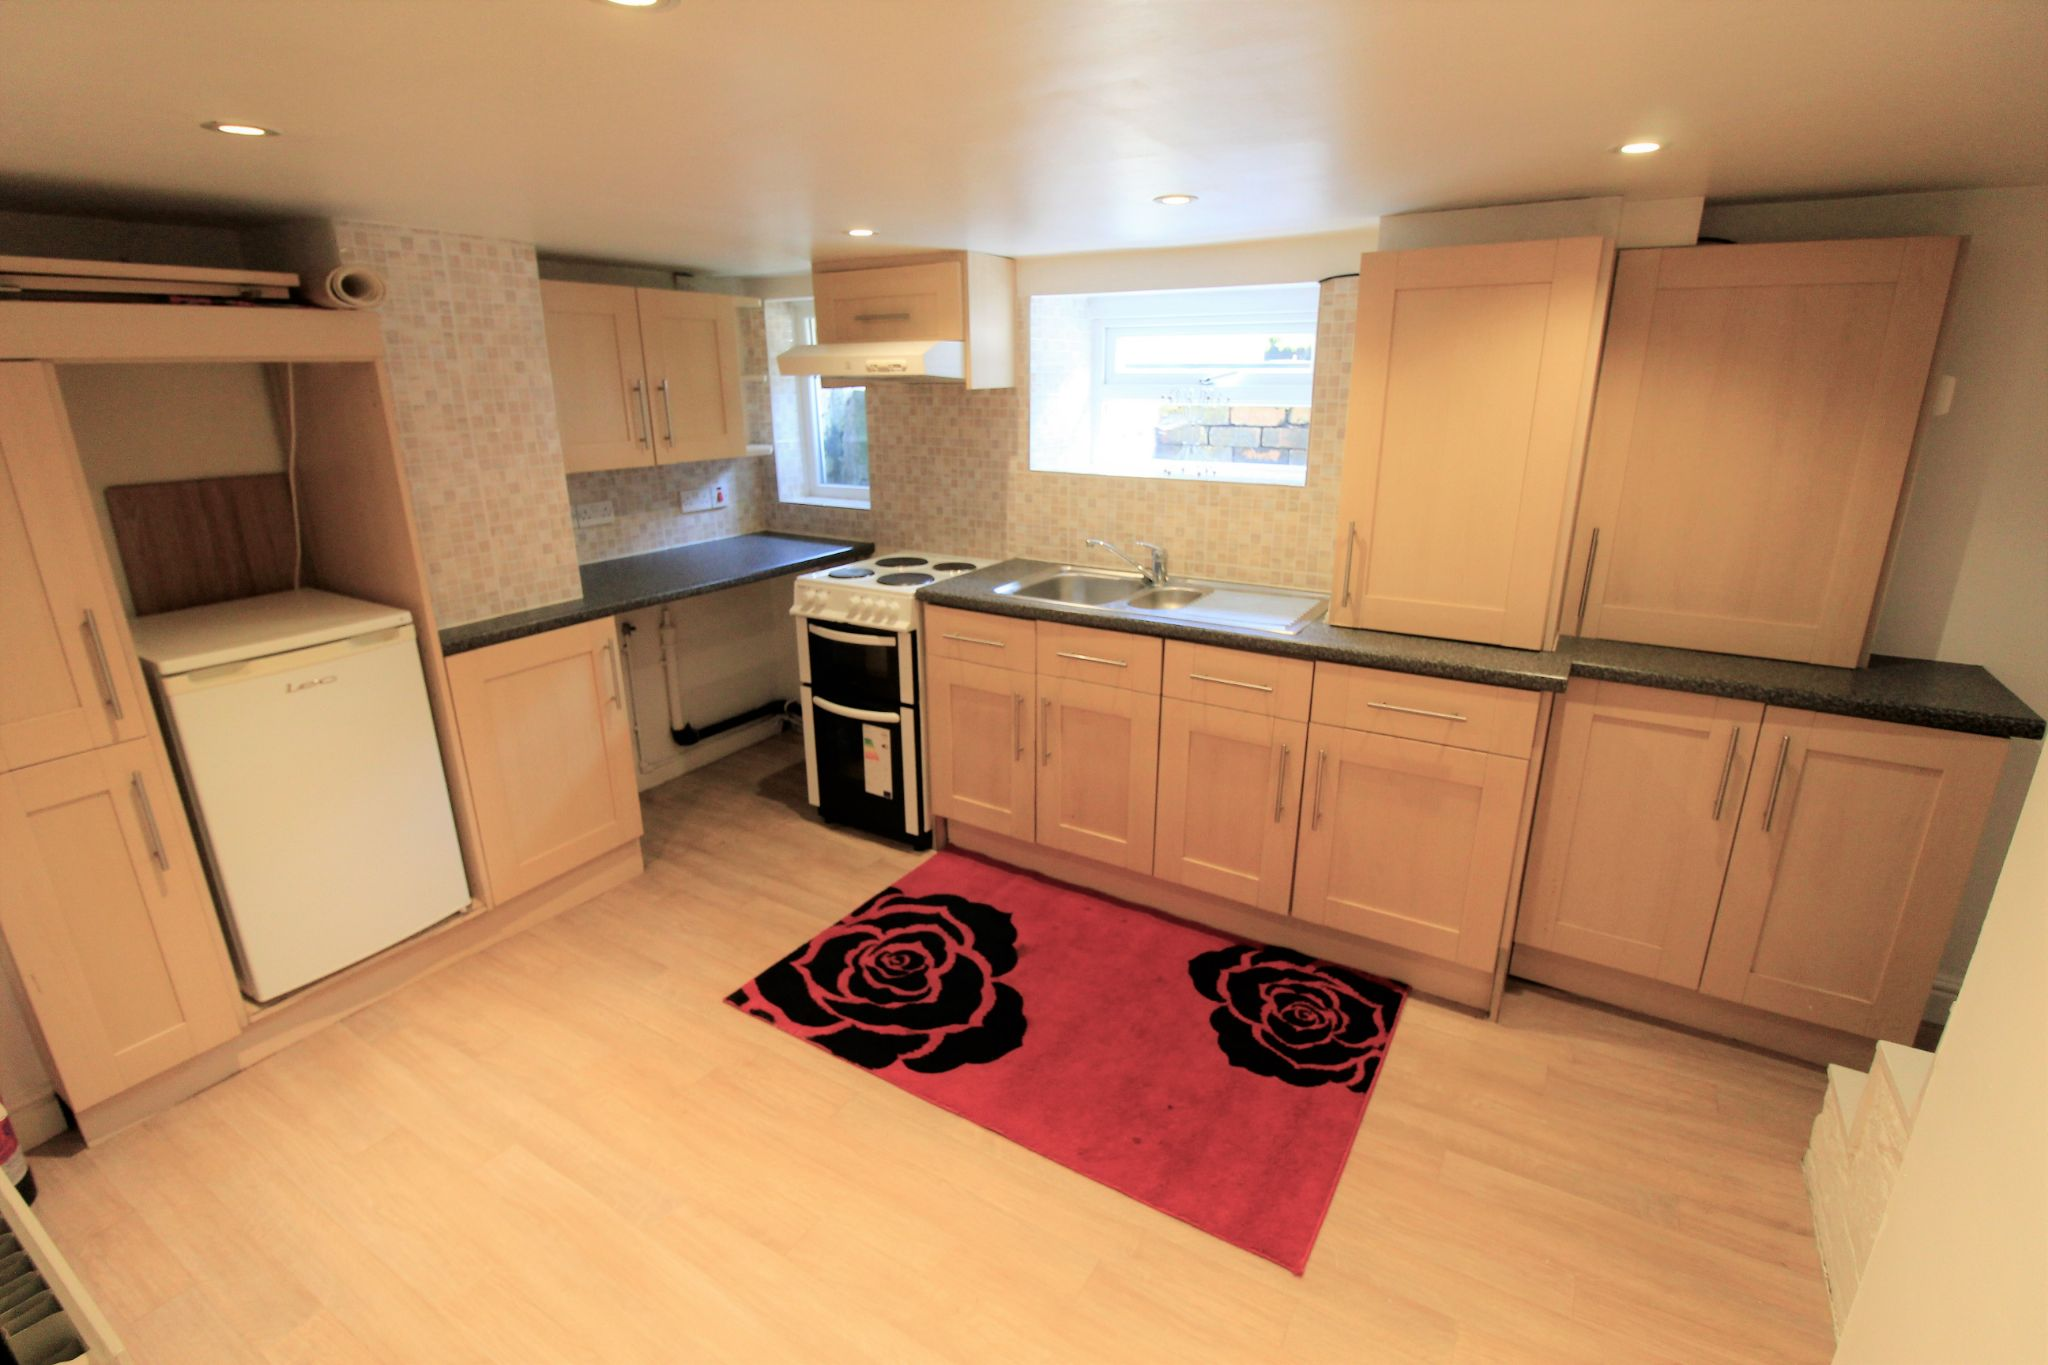 1 bedroom maisonette flat/apartment To Let in Huddersfield - Dining kitchen